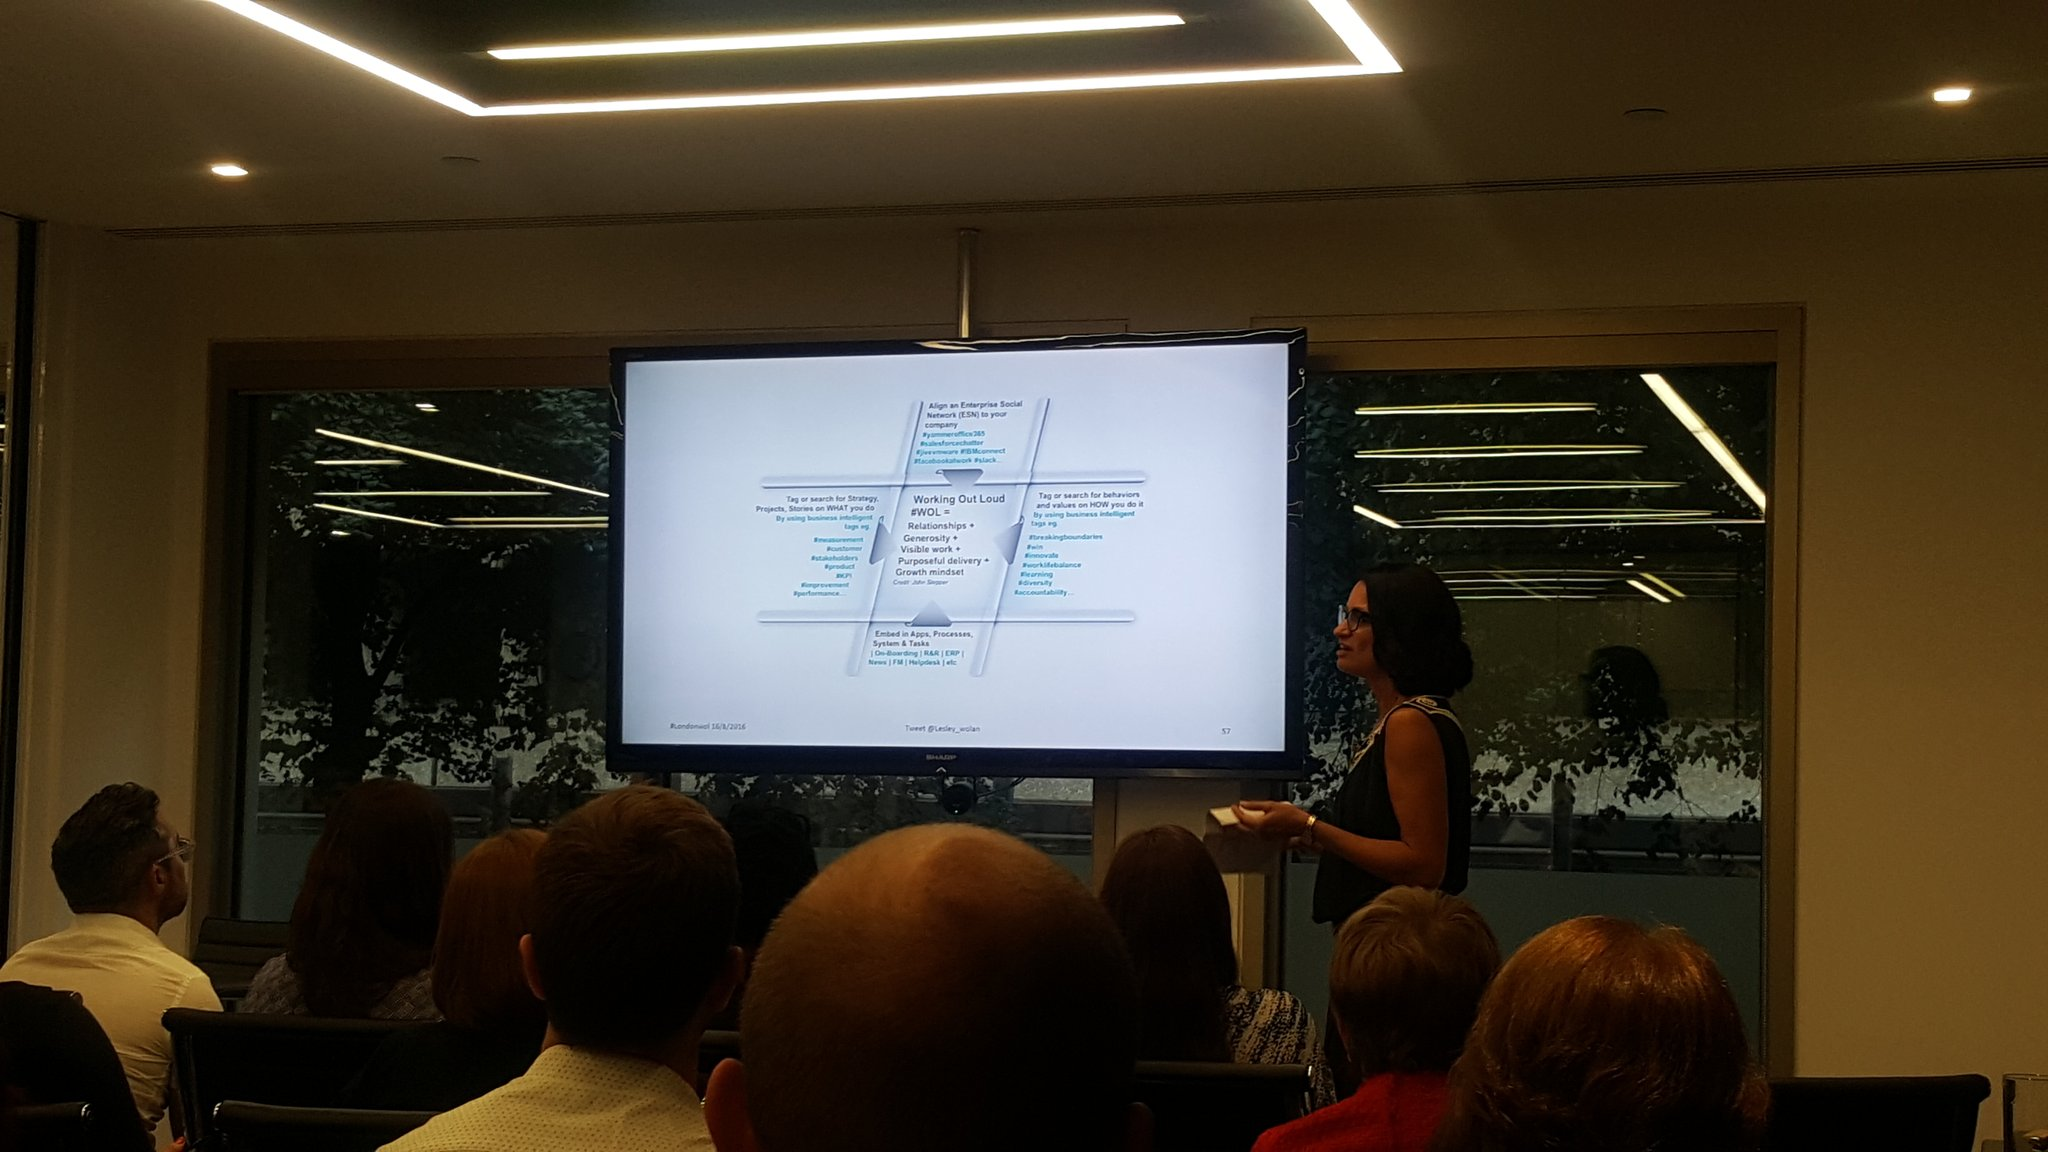 Now @Lesley_wolan explains proof of 'Working Out Loud' concept with a detailed giant hashtag #LondonWOL #WOL #ESN https://t.co/JCa5J4Dfe8